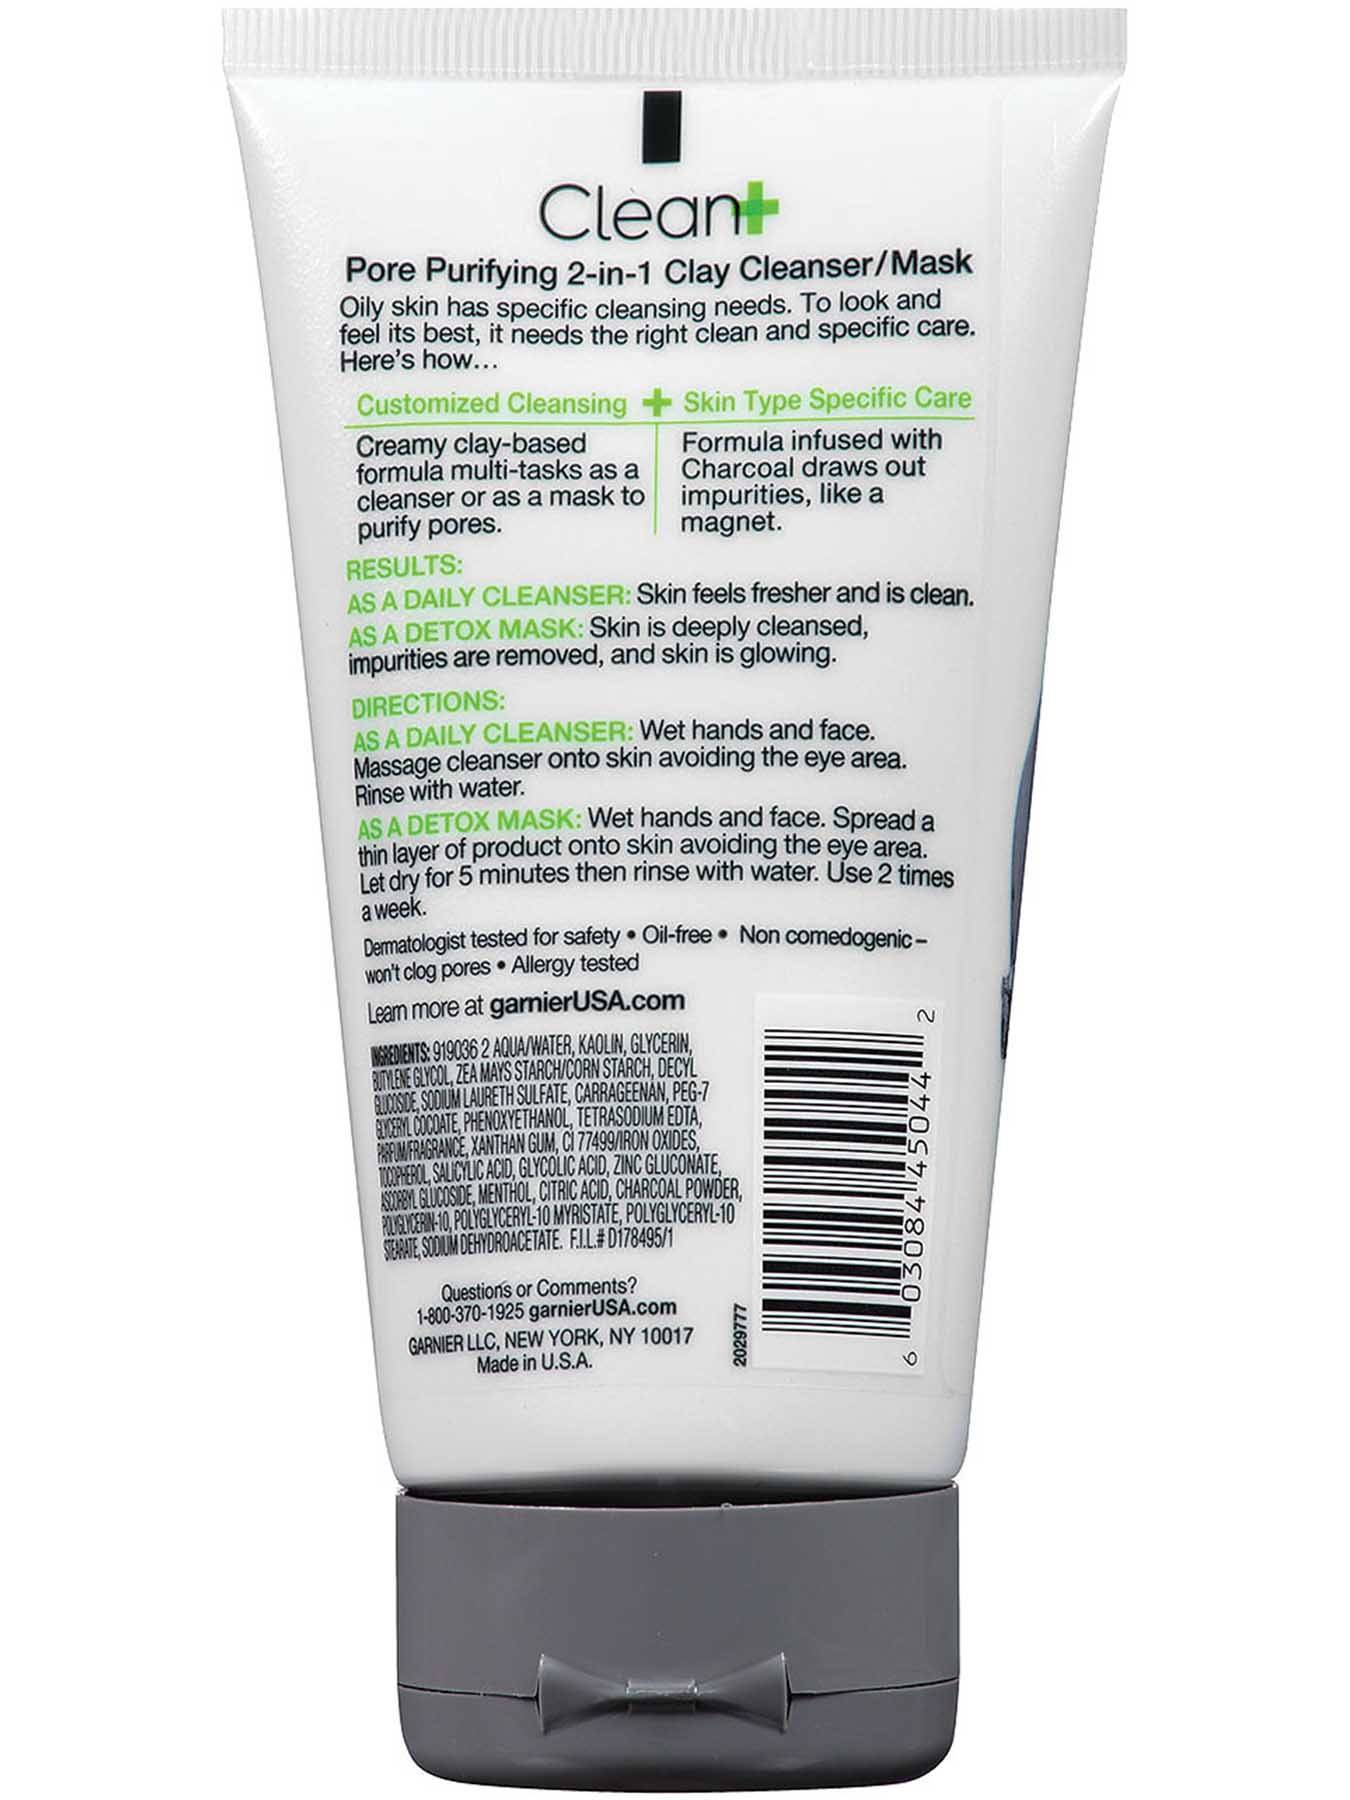 Back view of Clean+ Pore Purifying 2-in-1 Clay Cleanser/Mask, Oily Skin, Oil-Free.